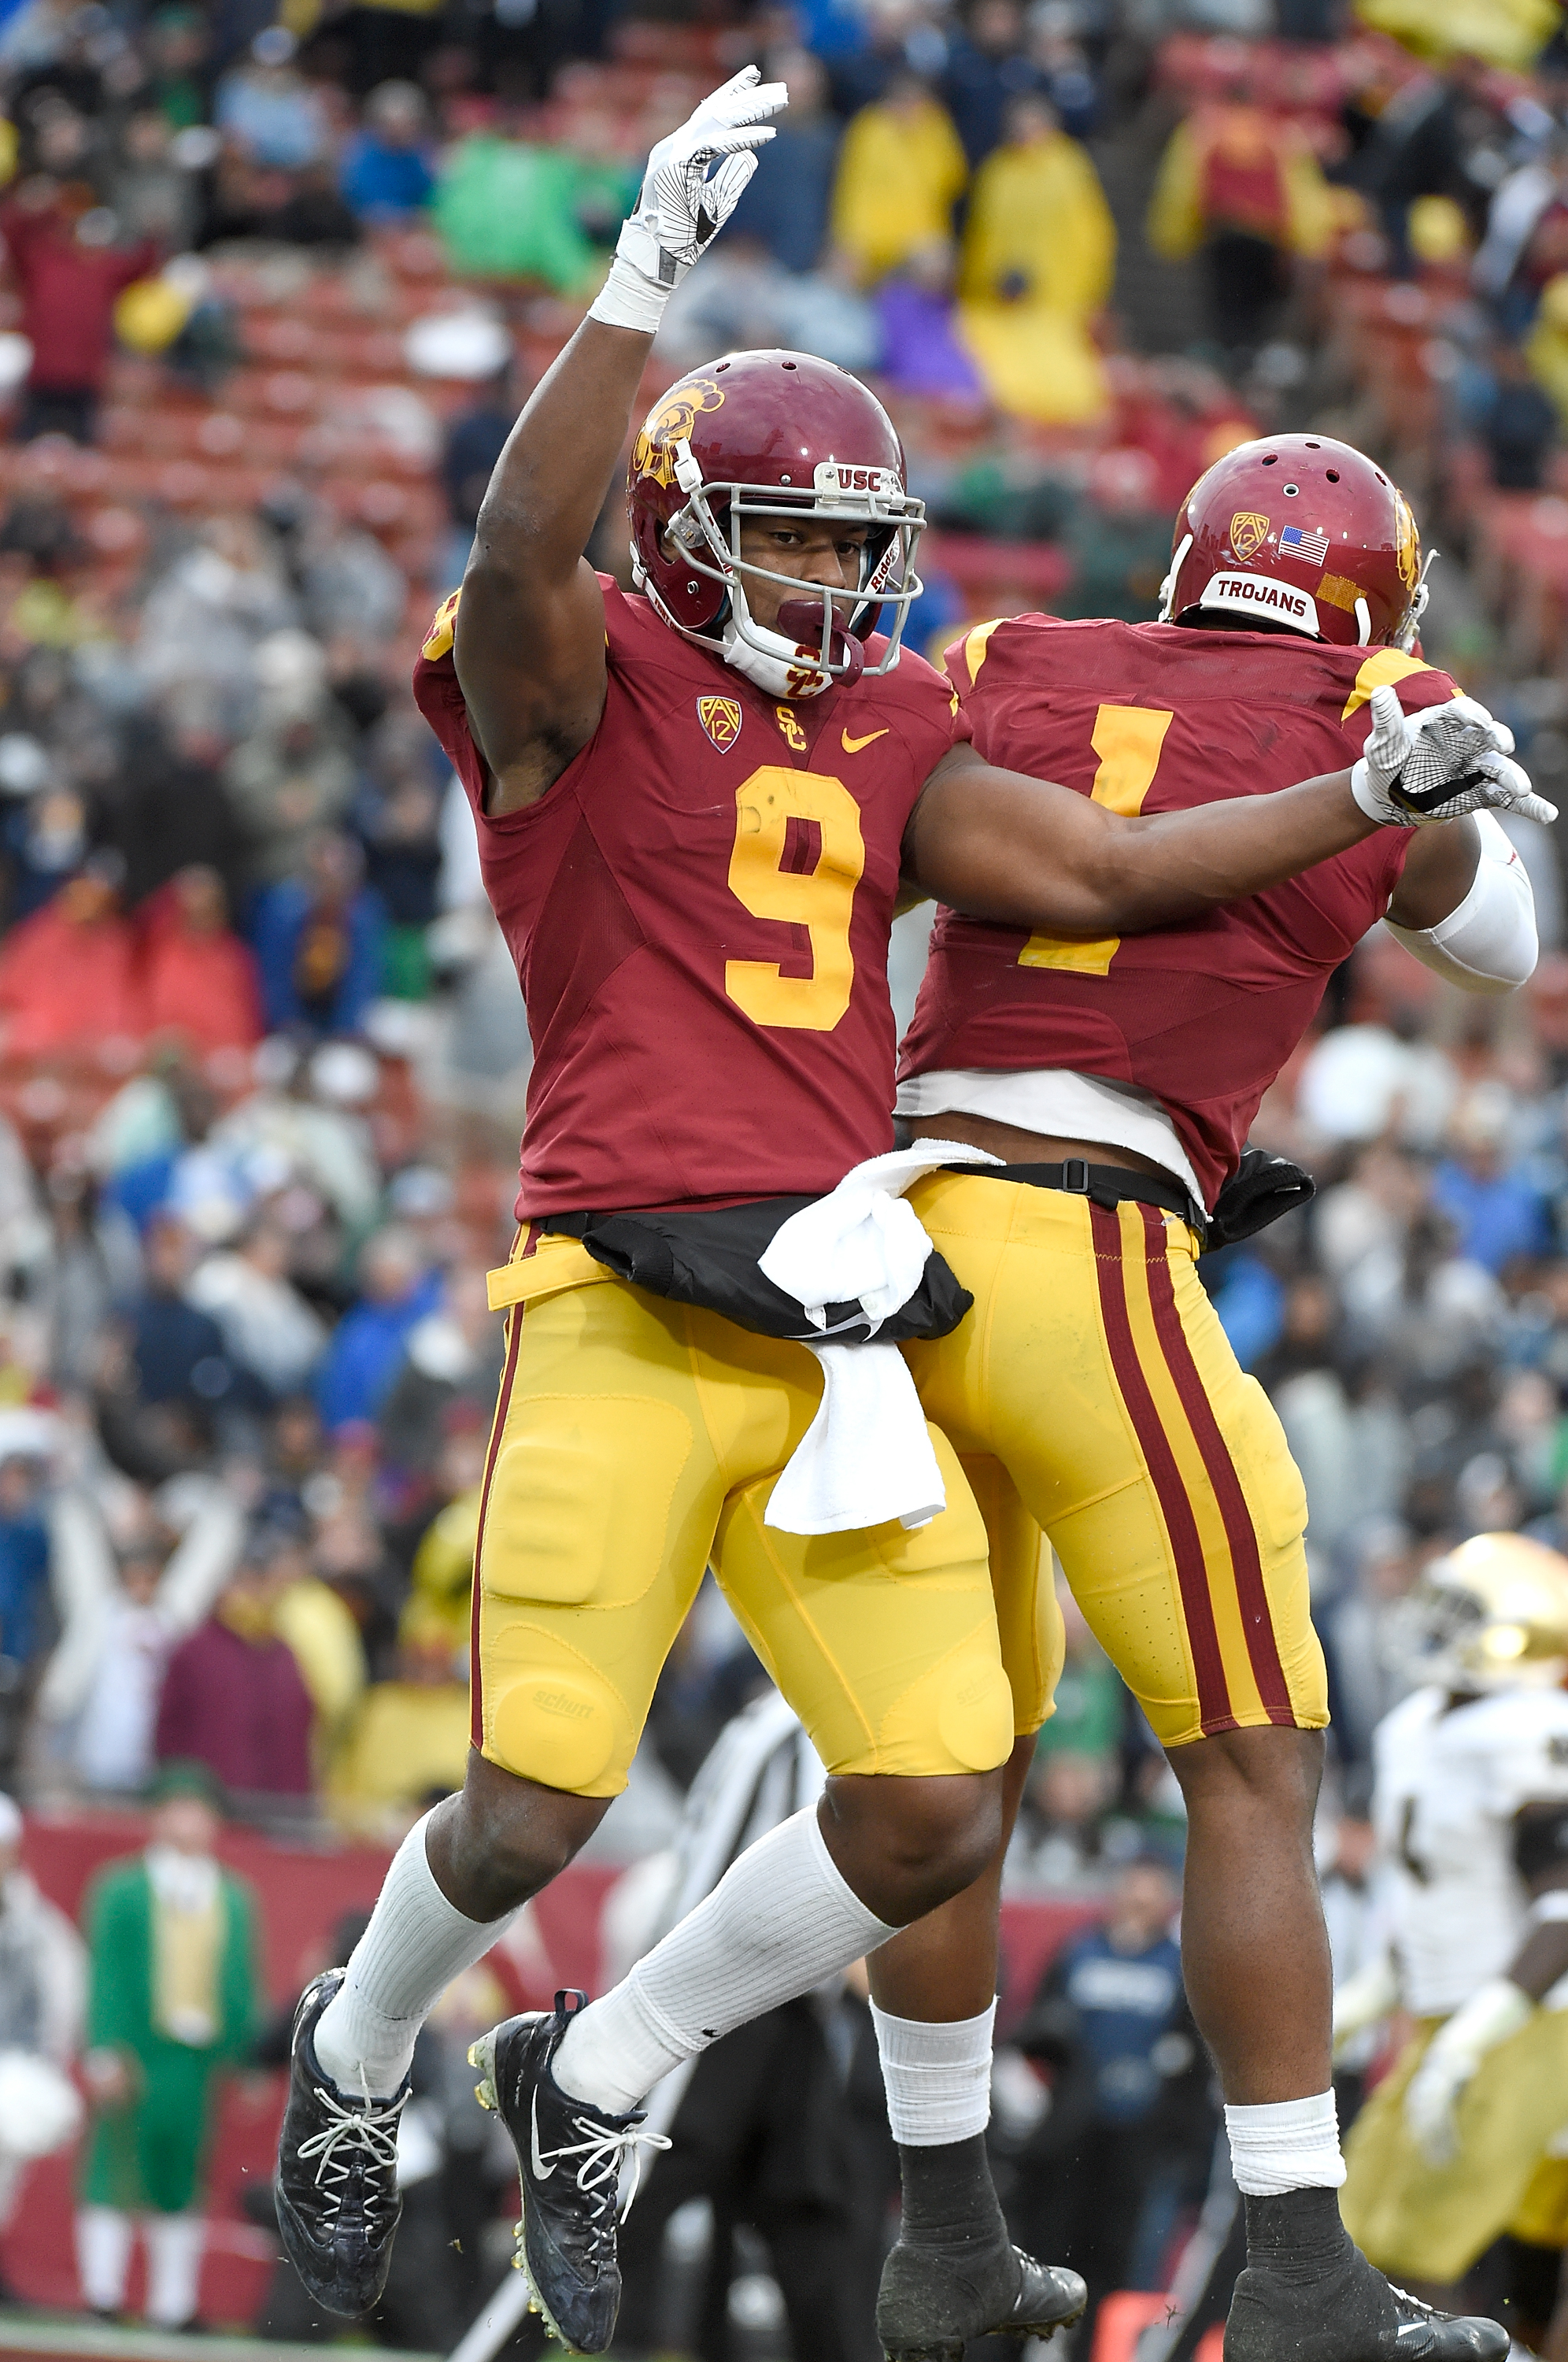 9dab6f3fe0e There are many reasons the Steelers drafted Juju Smith-Schuster in the 2nd  round